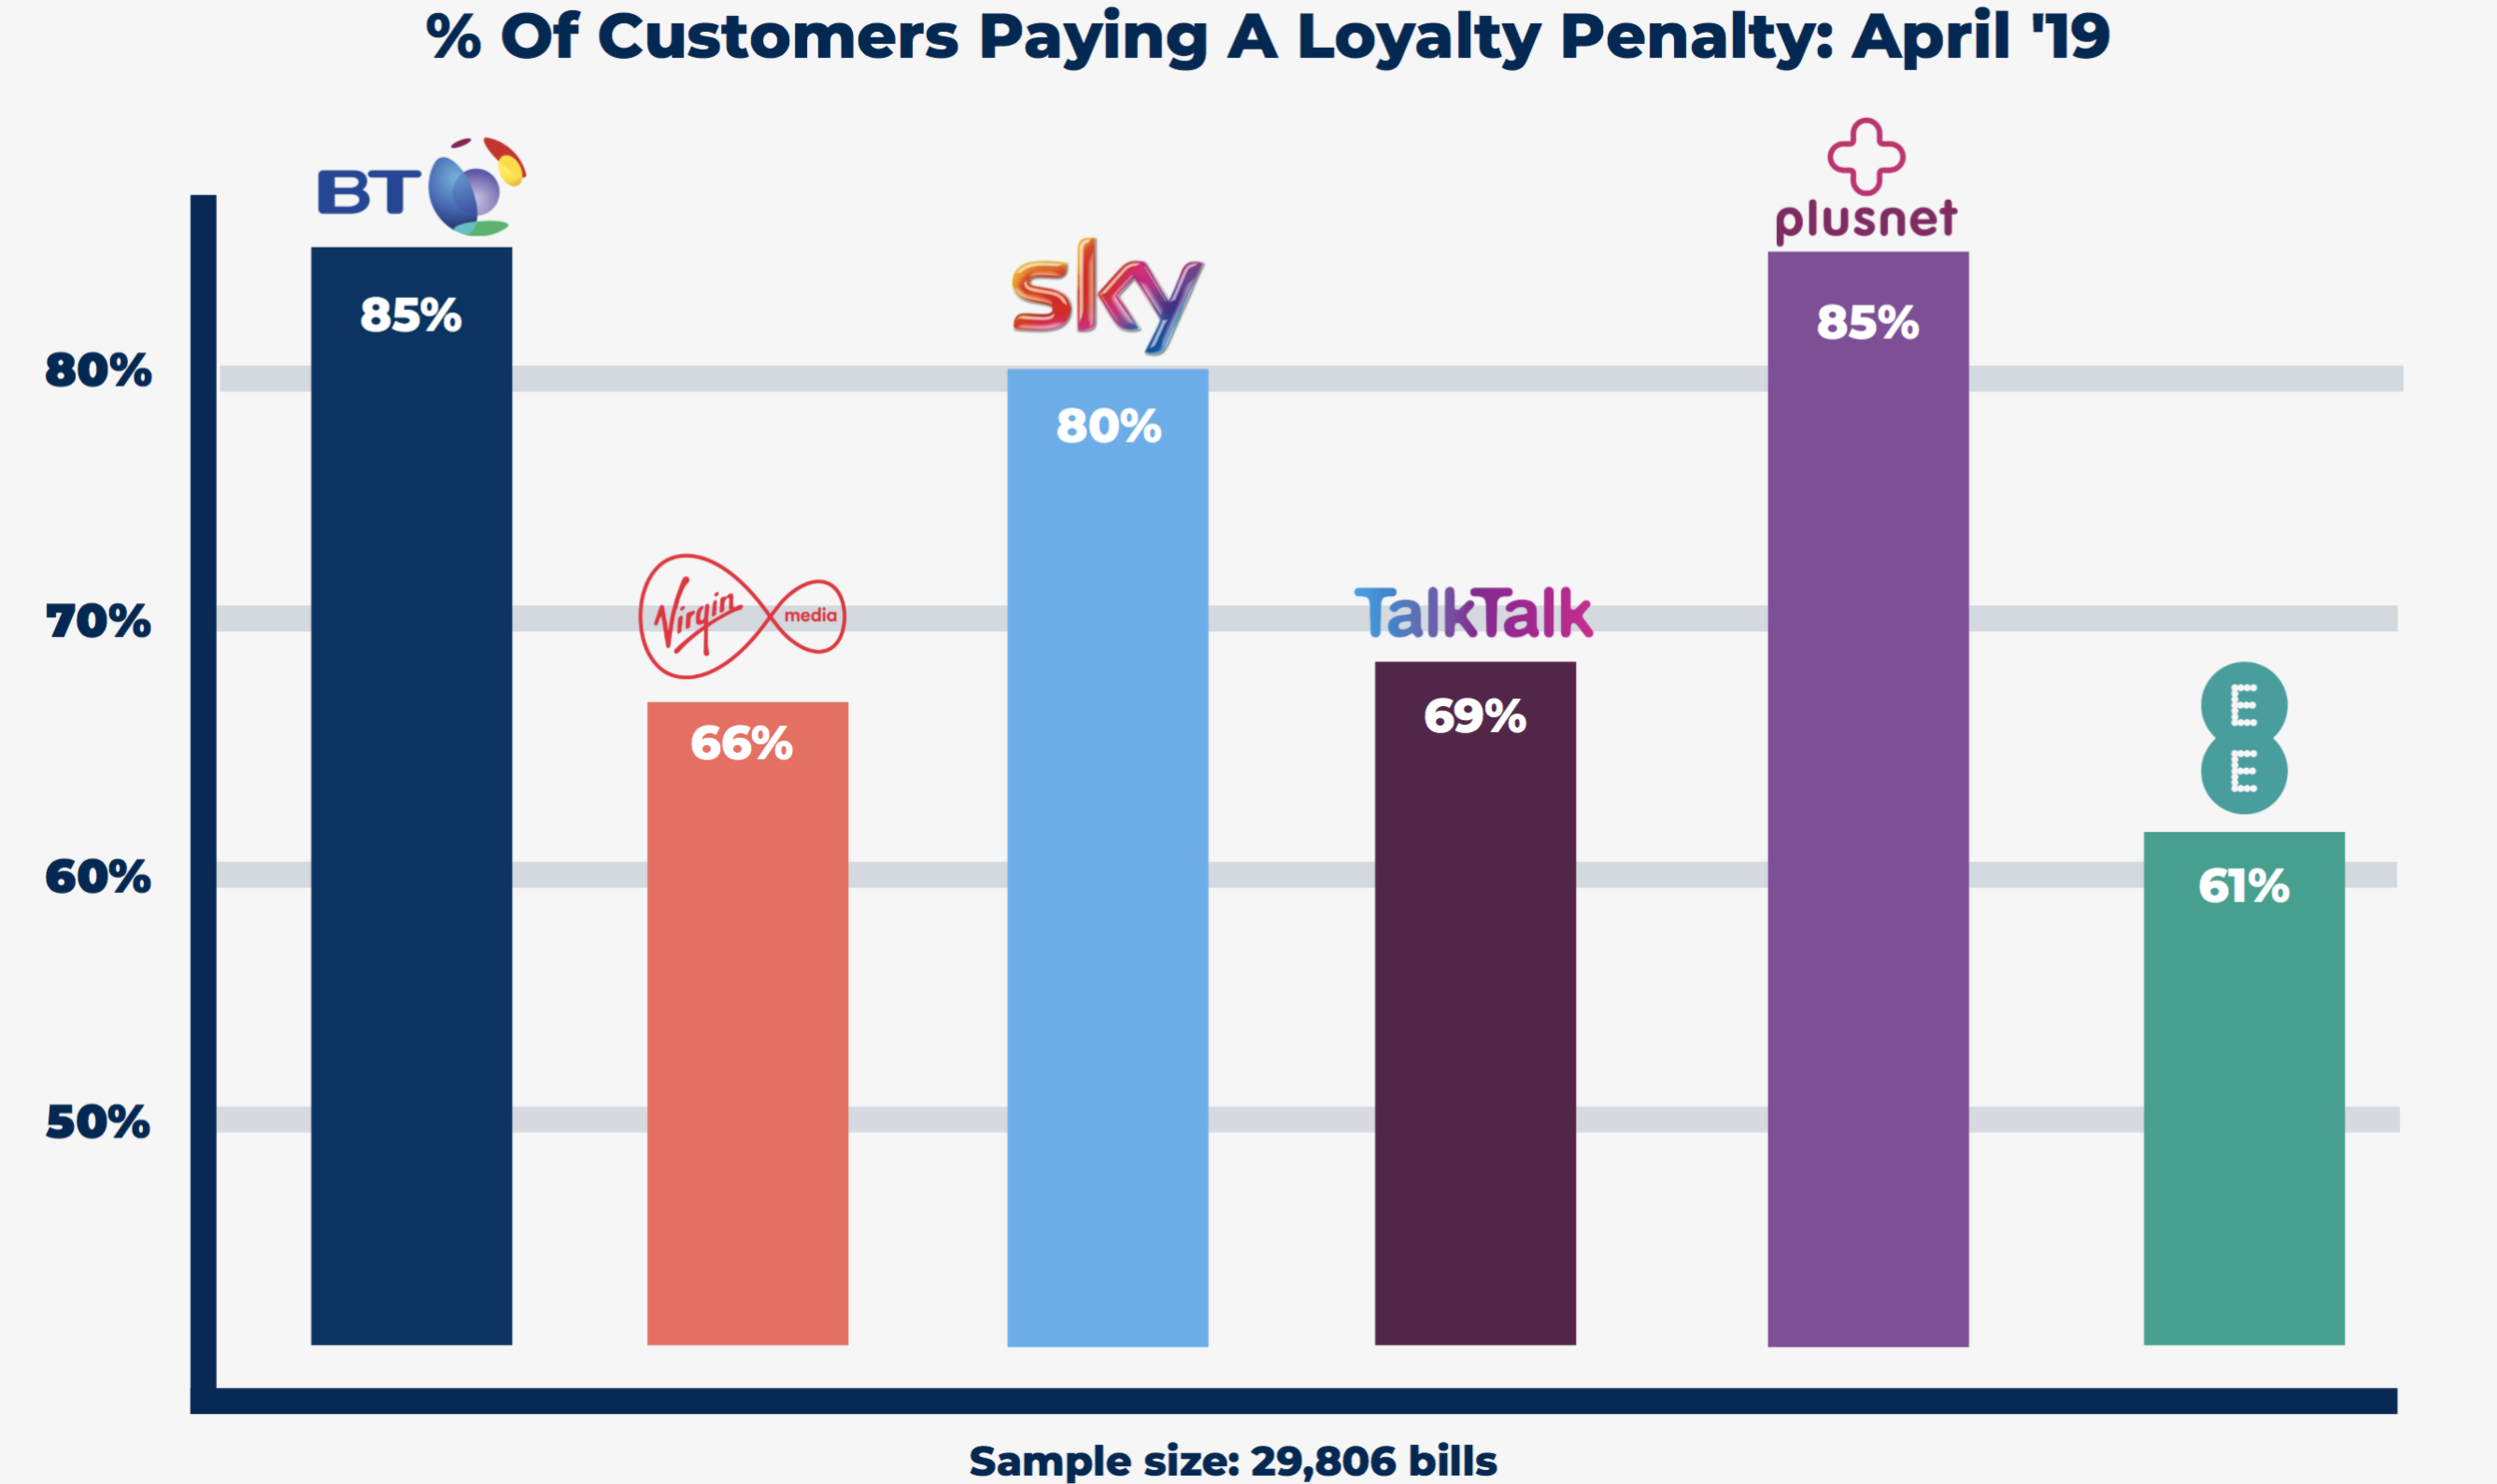 The percentage of customers paying a loyalty penalty per provider. This directly shows how many people are affected.